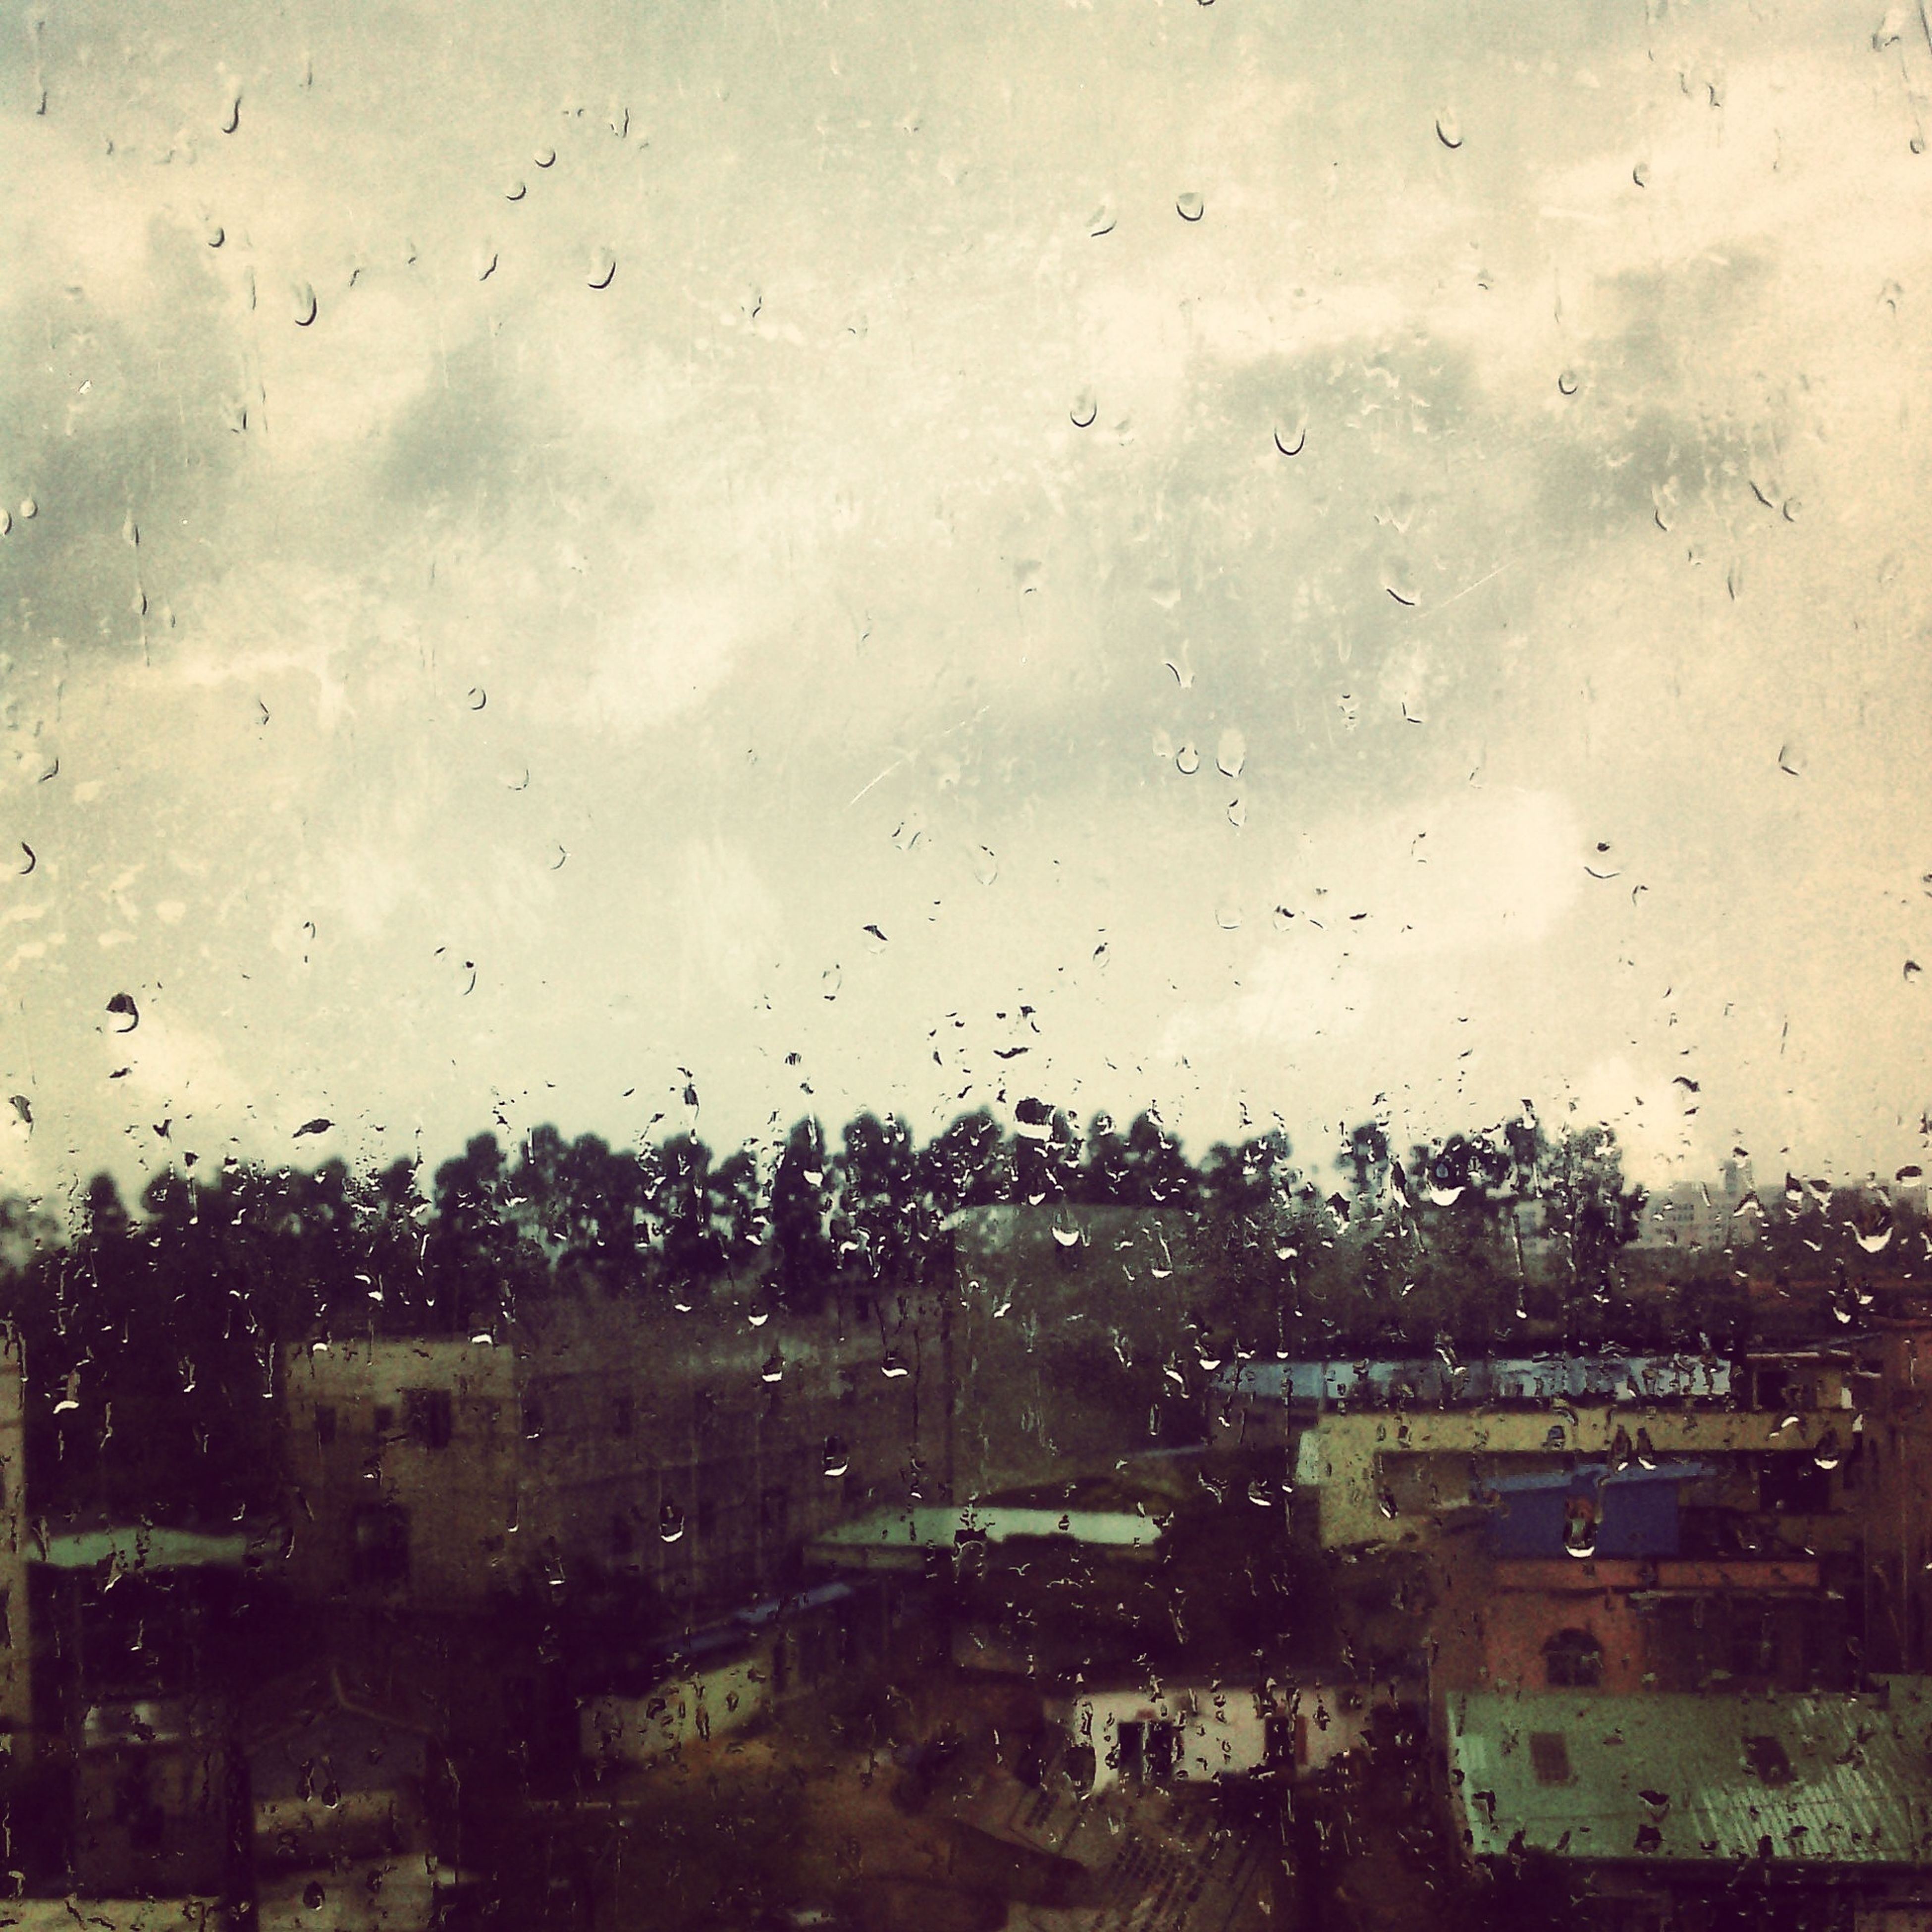 drop, wet, window, transparent, rain, sky, indoors, water, glass - material, raindrop, weather, glass, full frame, focus on foreground, season, cloud - sky, backgrounds, building exterior, built structure, tree